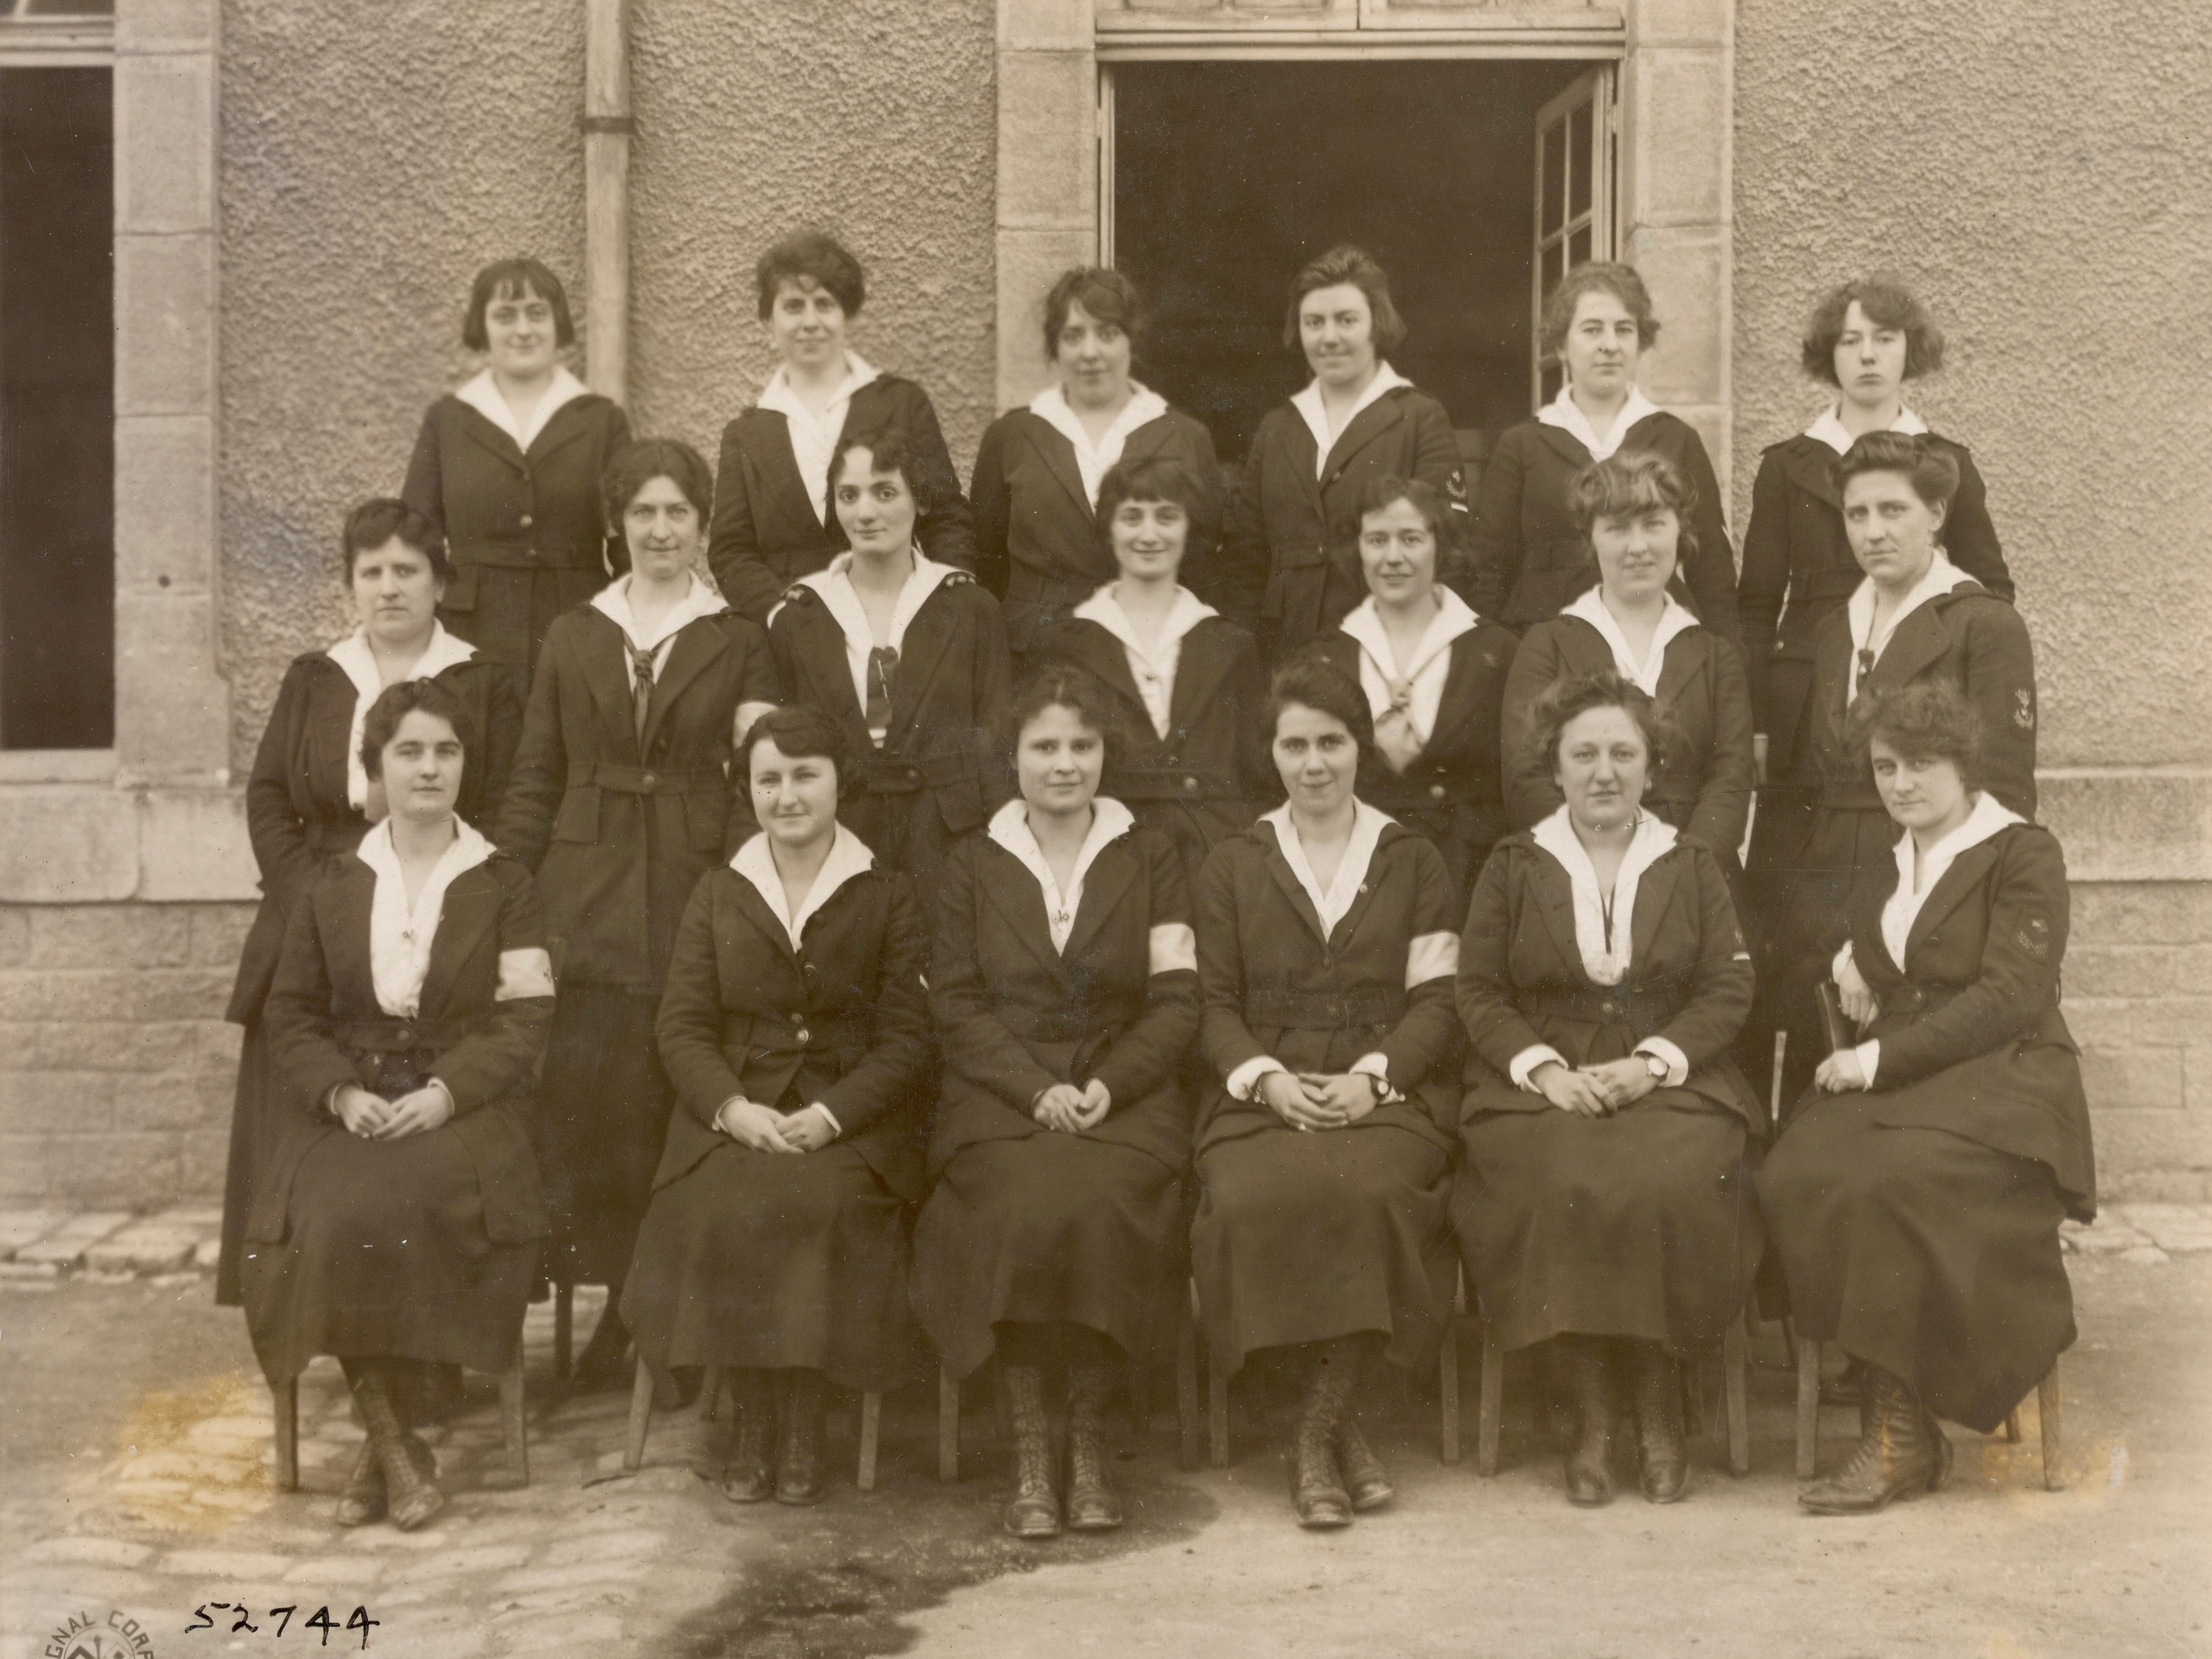 Oleda Joure is in the front row, third from left, in this photo of Signal Corps telephone operators at headquarters in Chaumont, France.